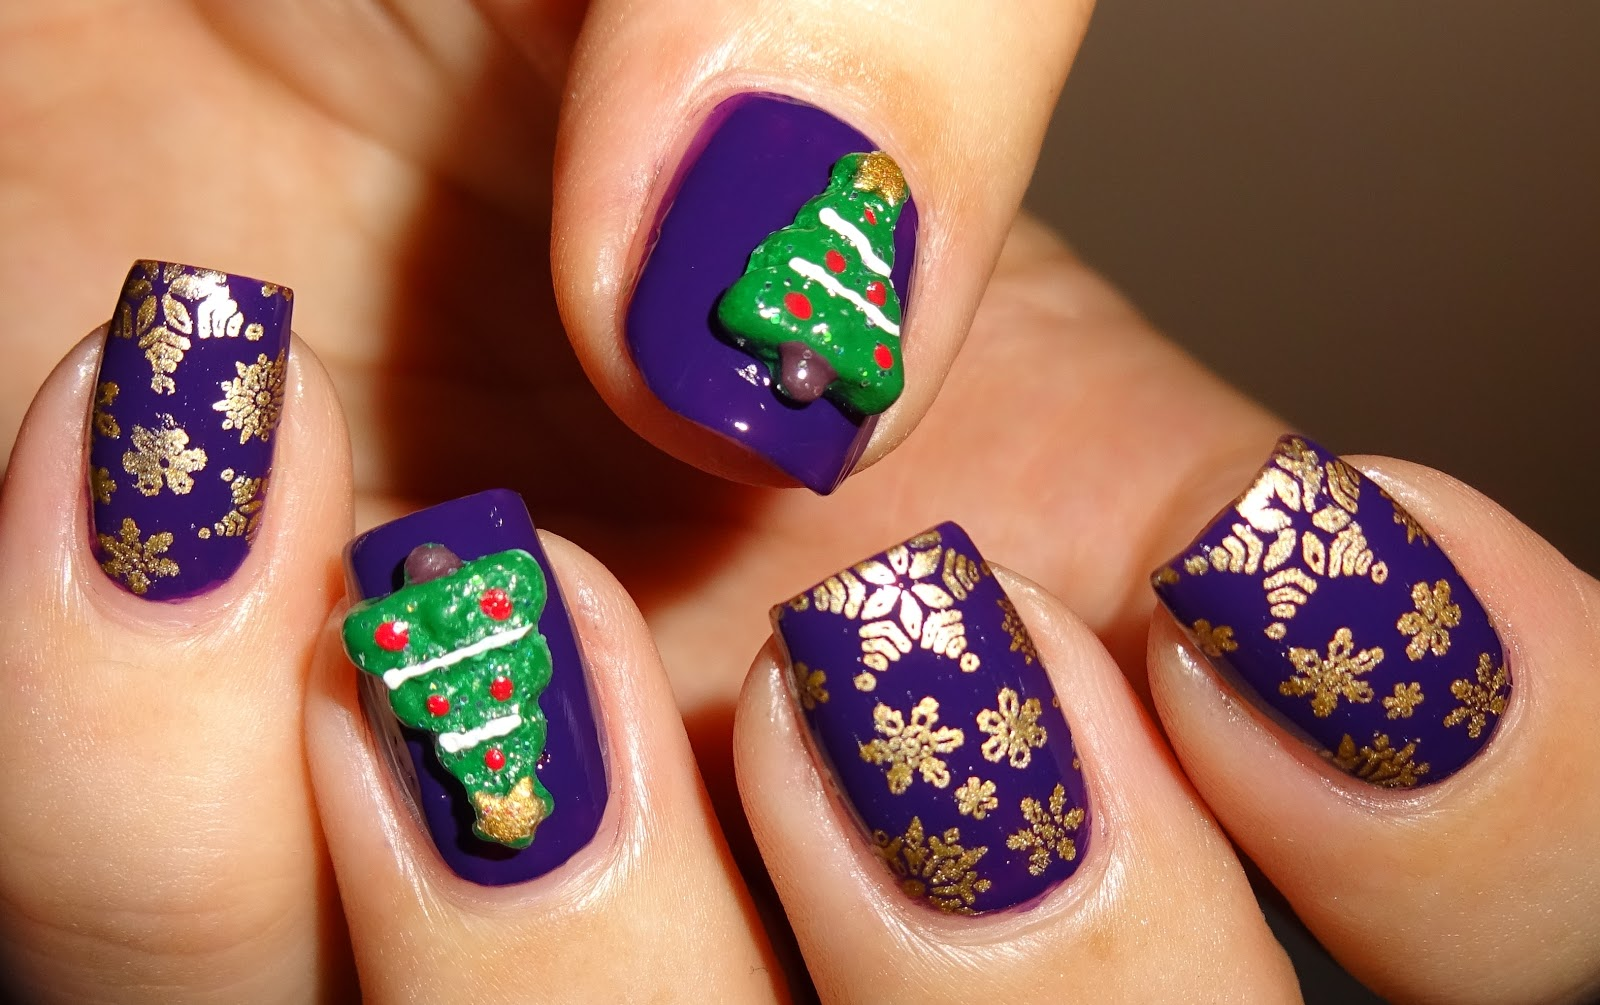 Christmas 3d Nail Art With Ring: Wendy's Delights: 3D Nail Art Christmas Trees From